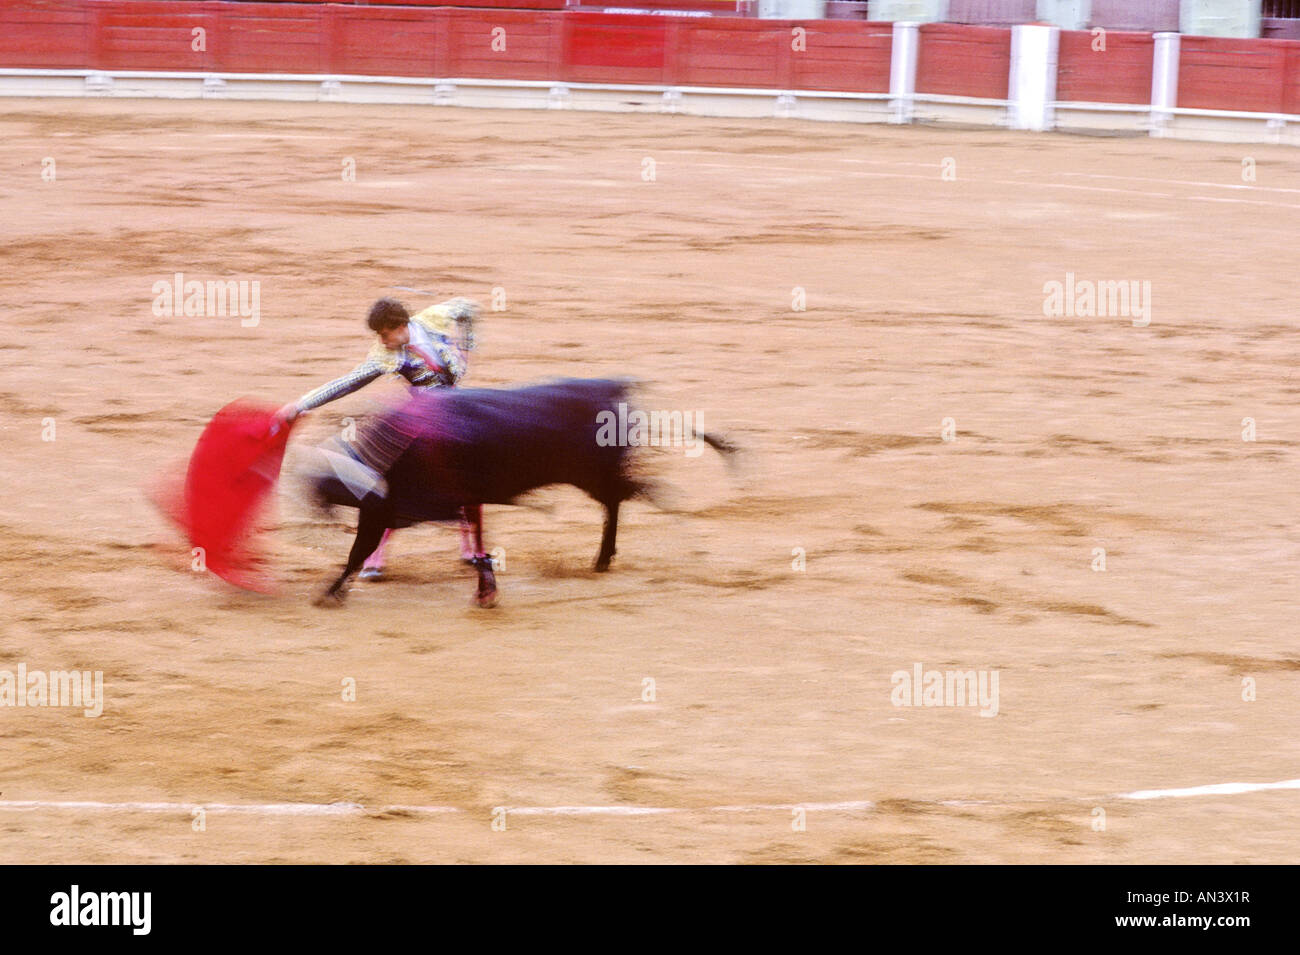 bullfighter-makes-a-pass-in-the-ring-in-